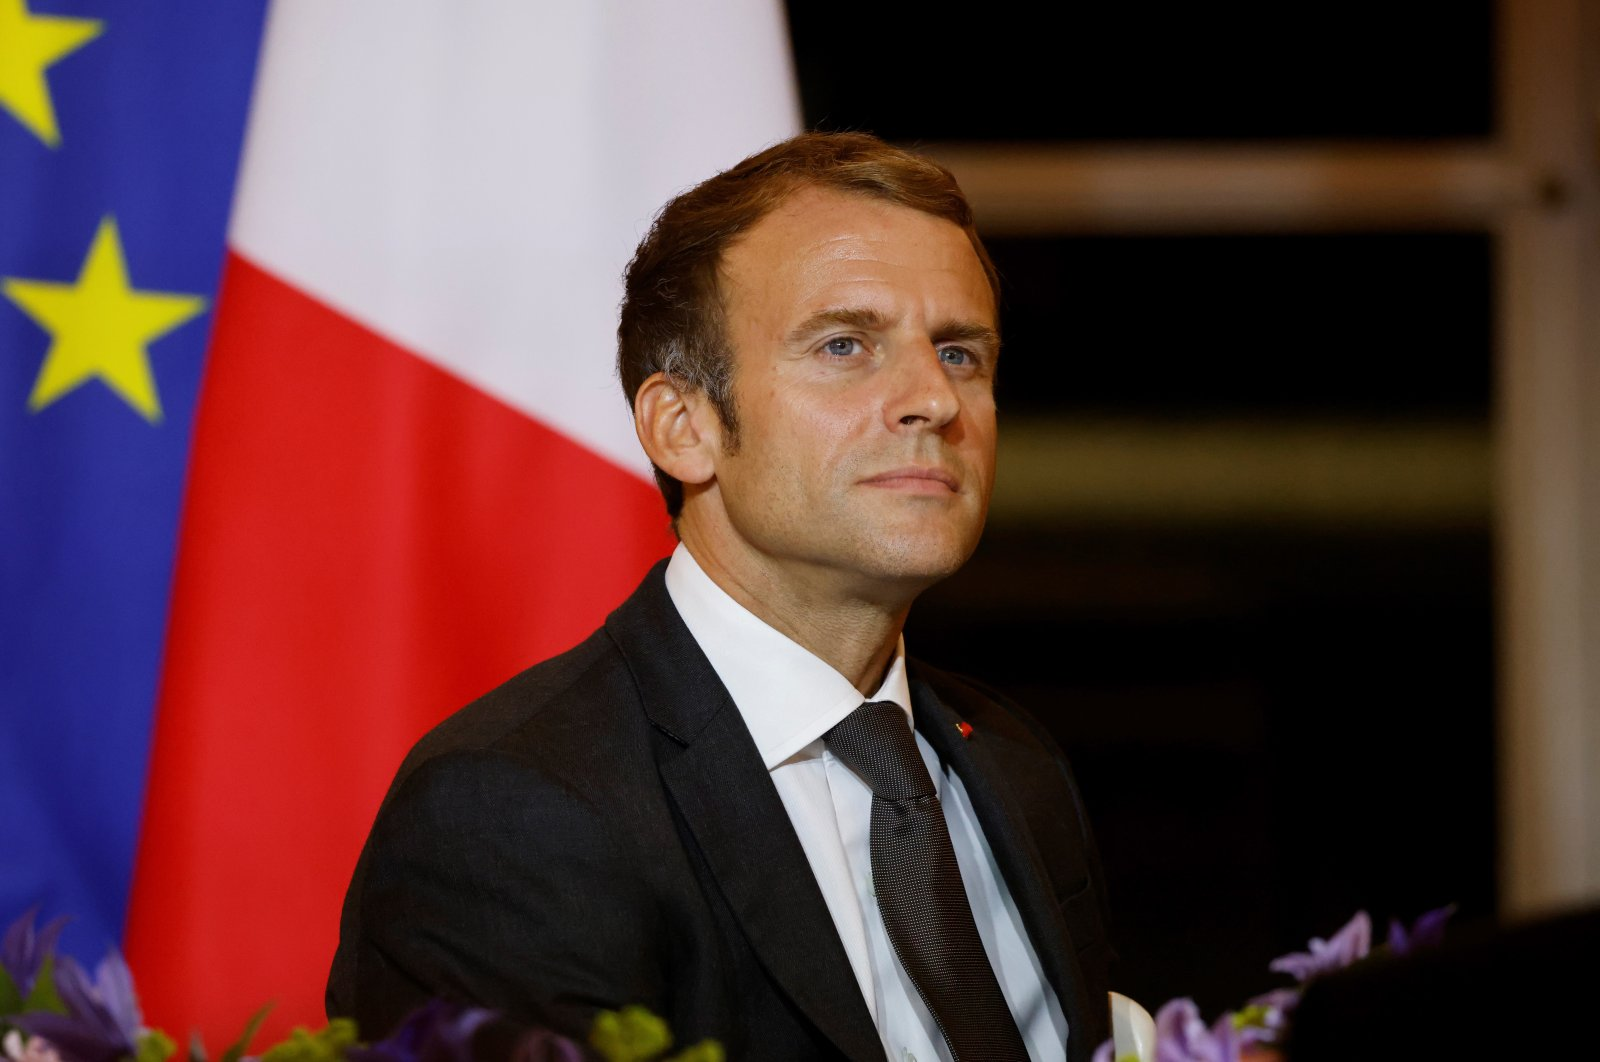 French President Emmanuel Macron reacts as he hosts a dinner at the Elysee Palace as part of the closing ceremony of the Africa2020 Season, which presented the views of the civil society from the African continent and its recent diaspora in different sectors of activity in Paris, France, Sept. 30, 2021.